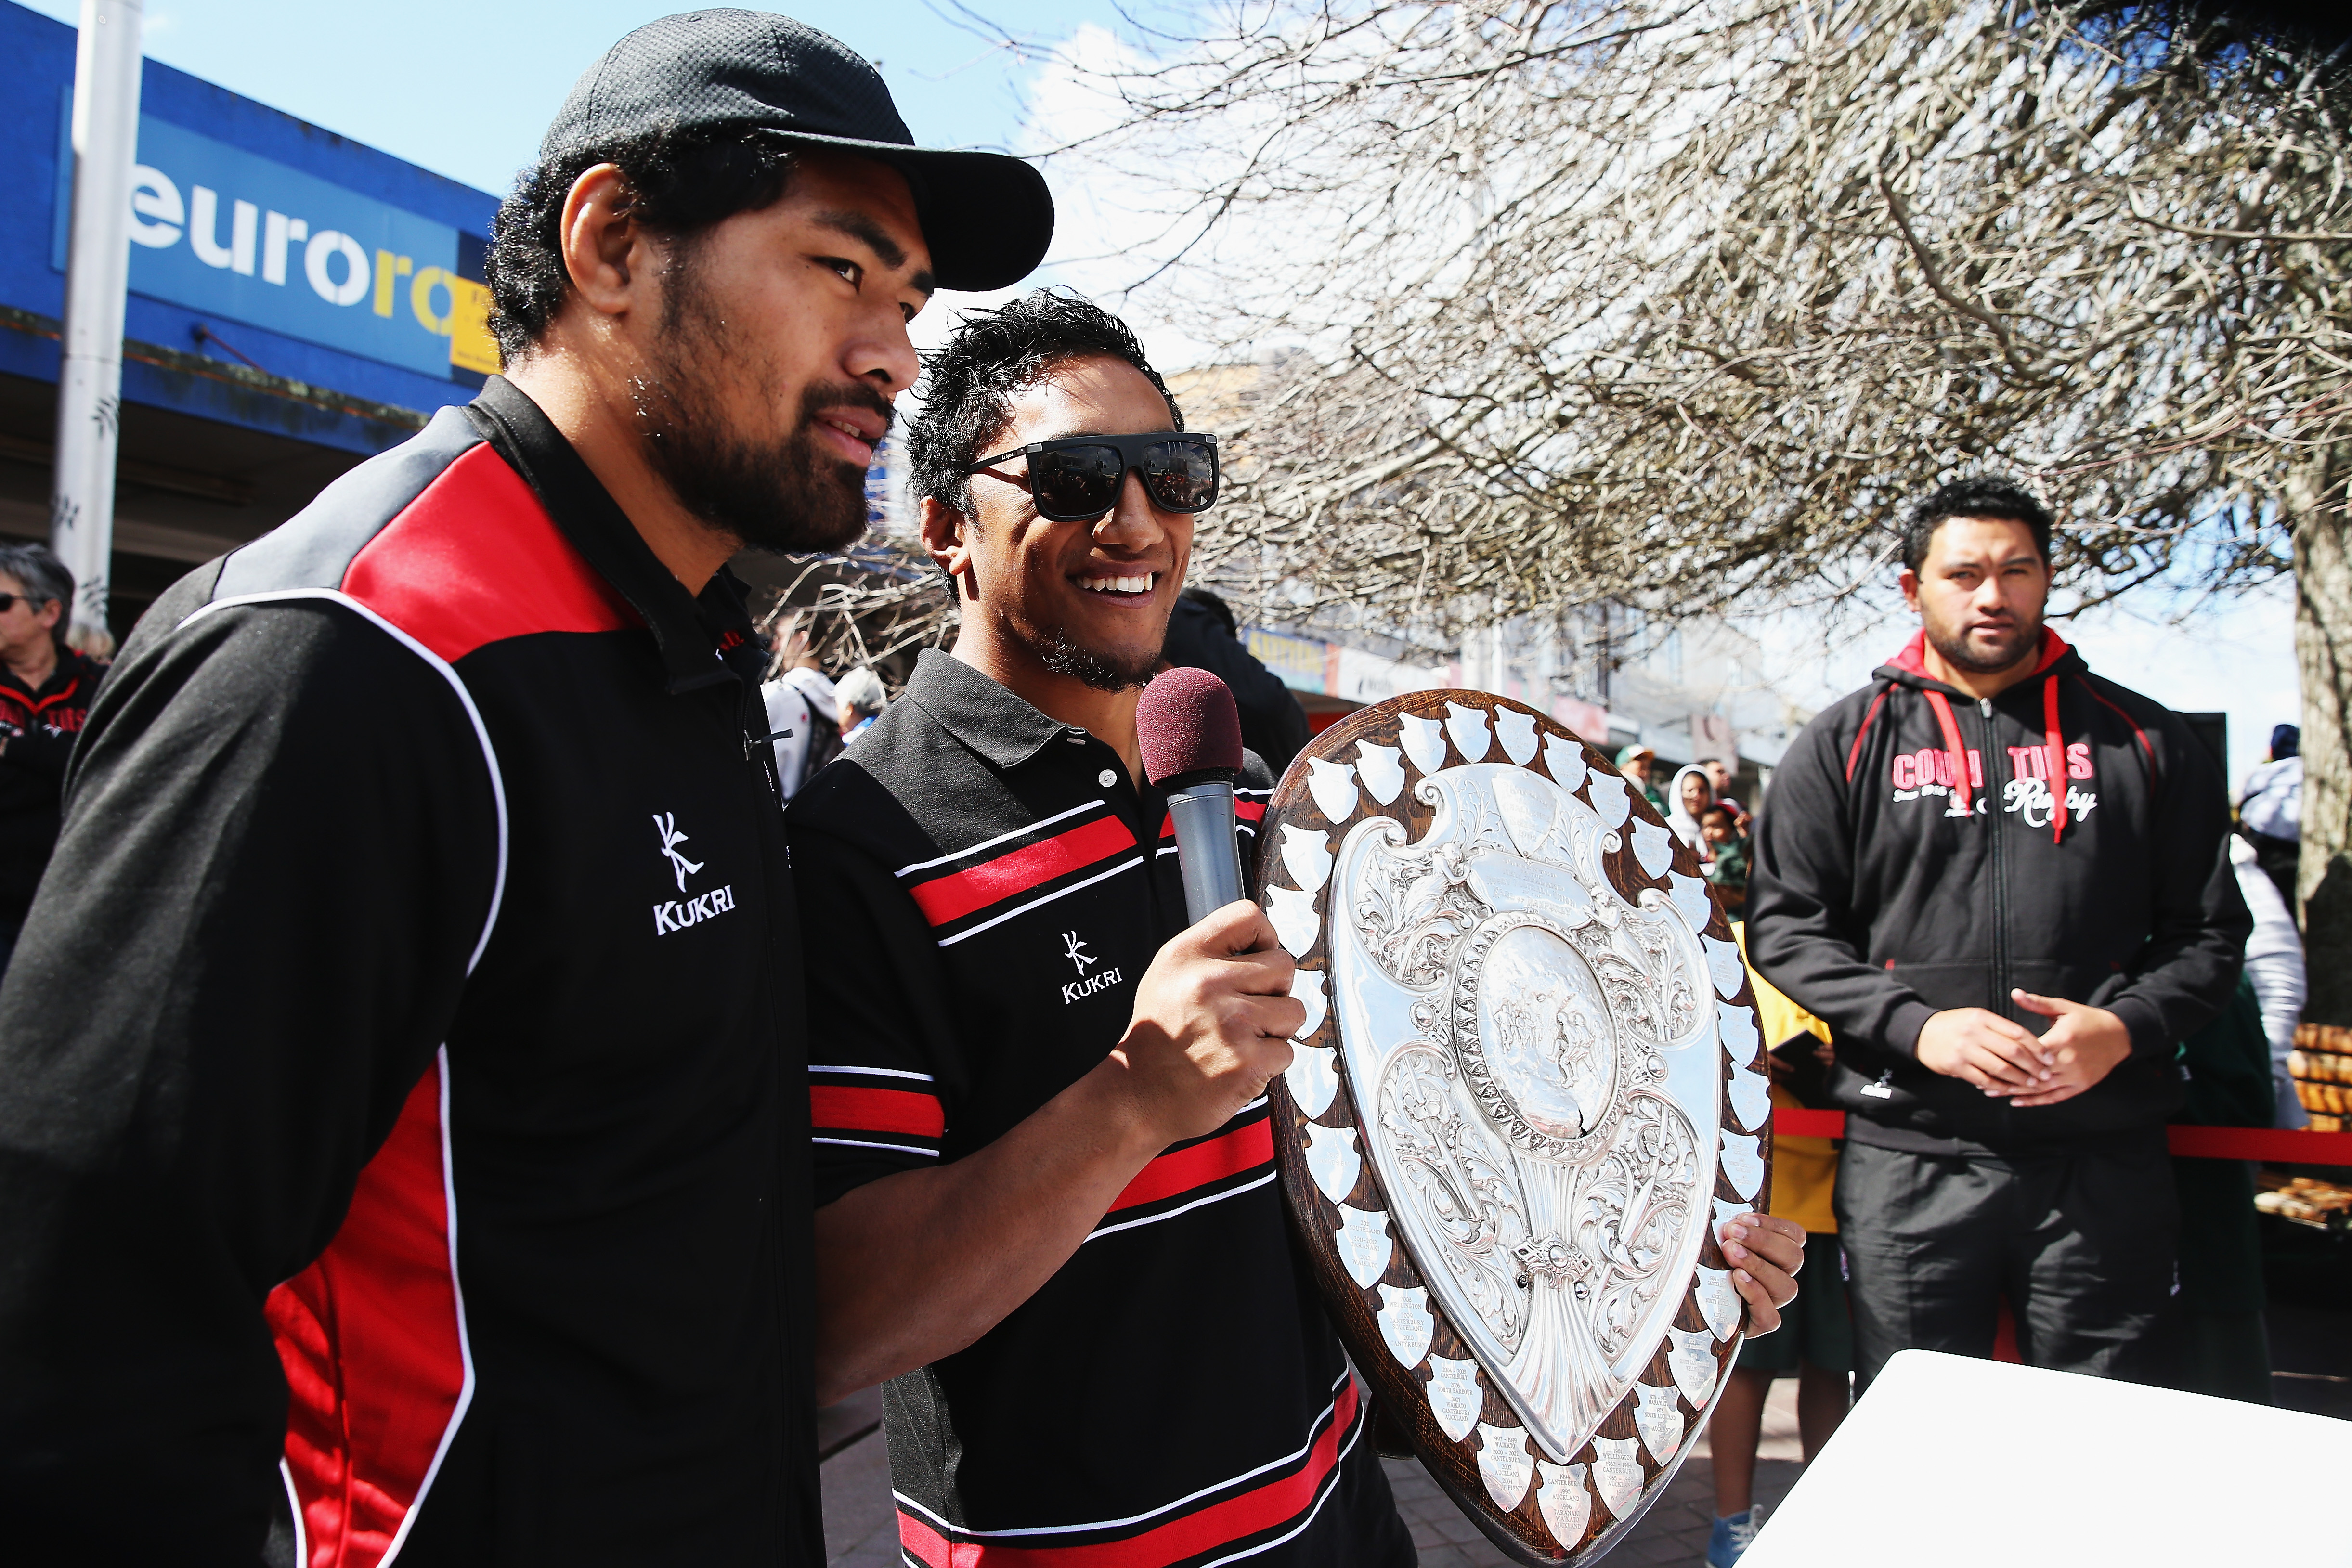 PAPAKURA, NEW ZEALAND - SEPTEMBER 09: Bundee Aki and Fritz Lee of Counties Manukau pose for photos during a victory parade with the Ranfurly Shield on September 9, 2013 in Papakura, New Zealand. Counties Manukau defeated Hawke's Bay on Saturday in the ITM Cup match to hold the Ranfurly Shield. (Photo by Hannah Peters/Getty Images)